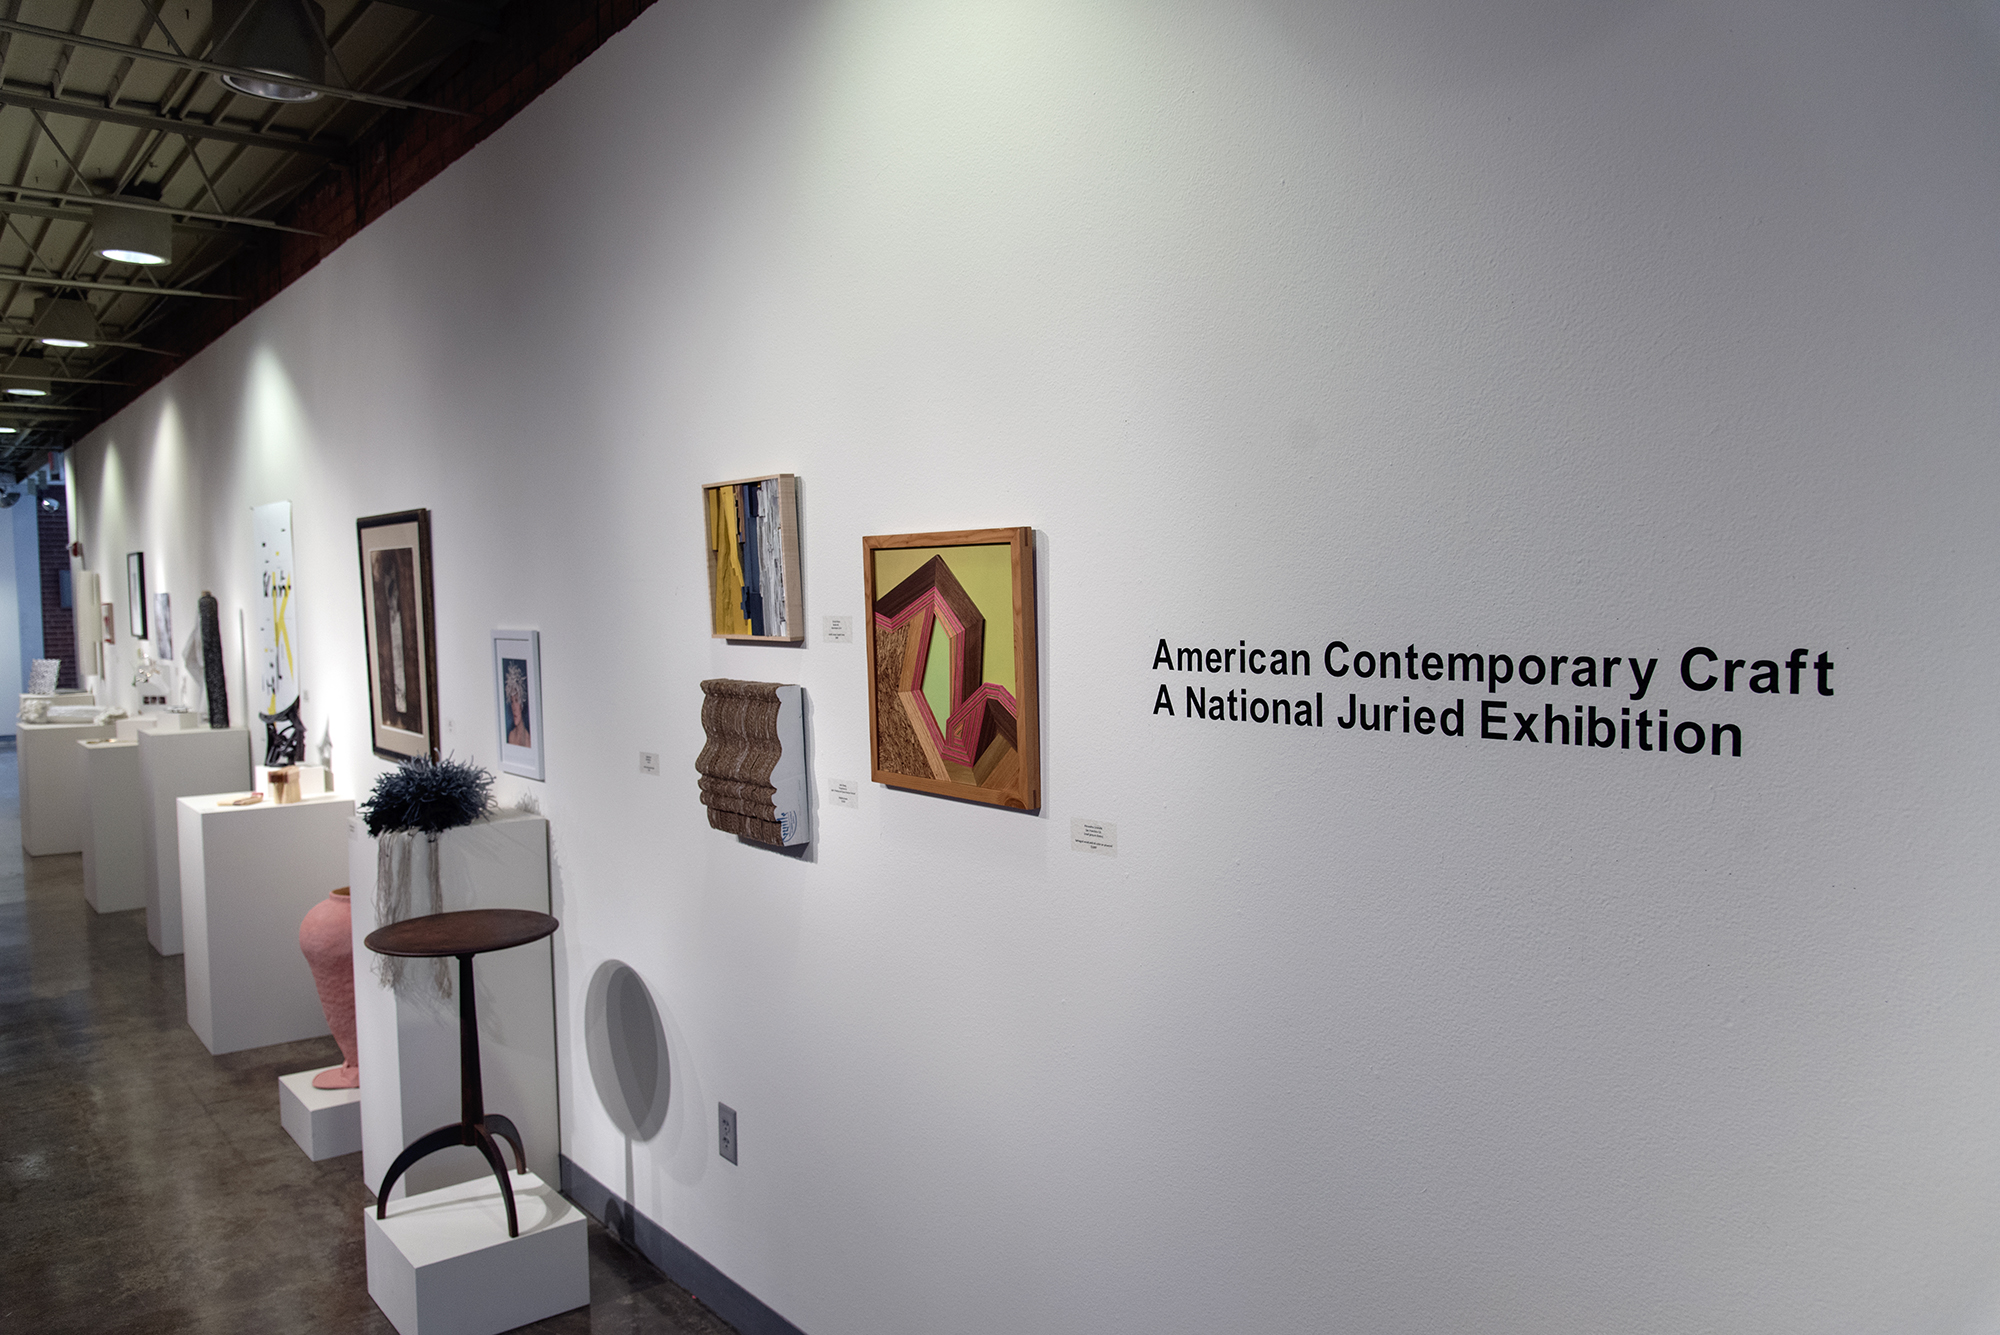 American Contemporary Craft: A National Juried Exhibition